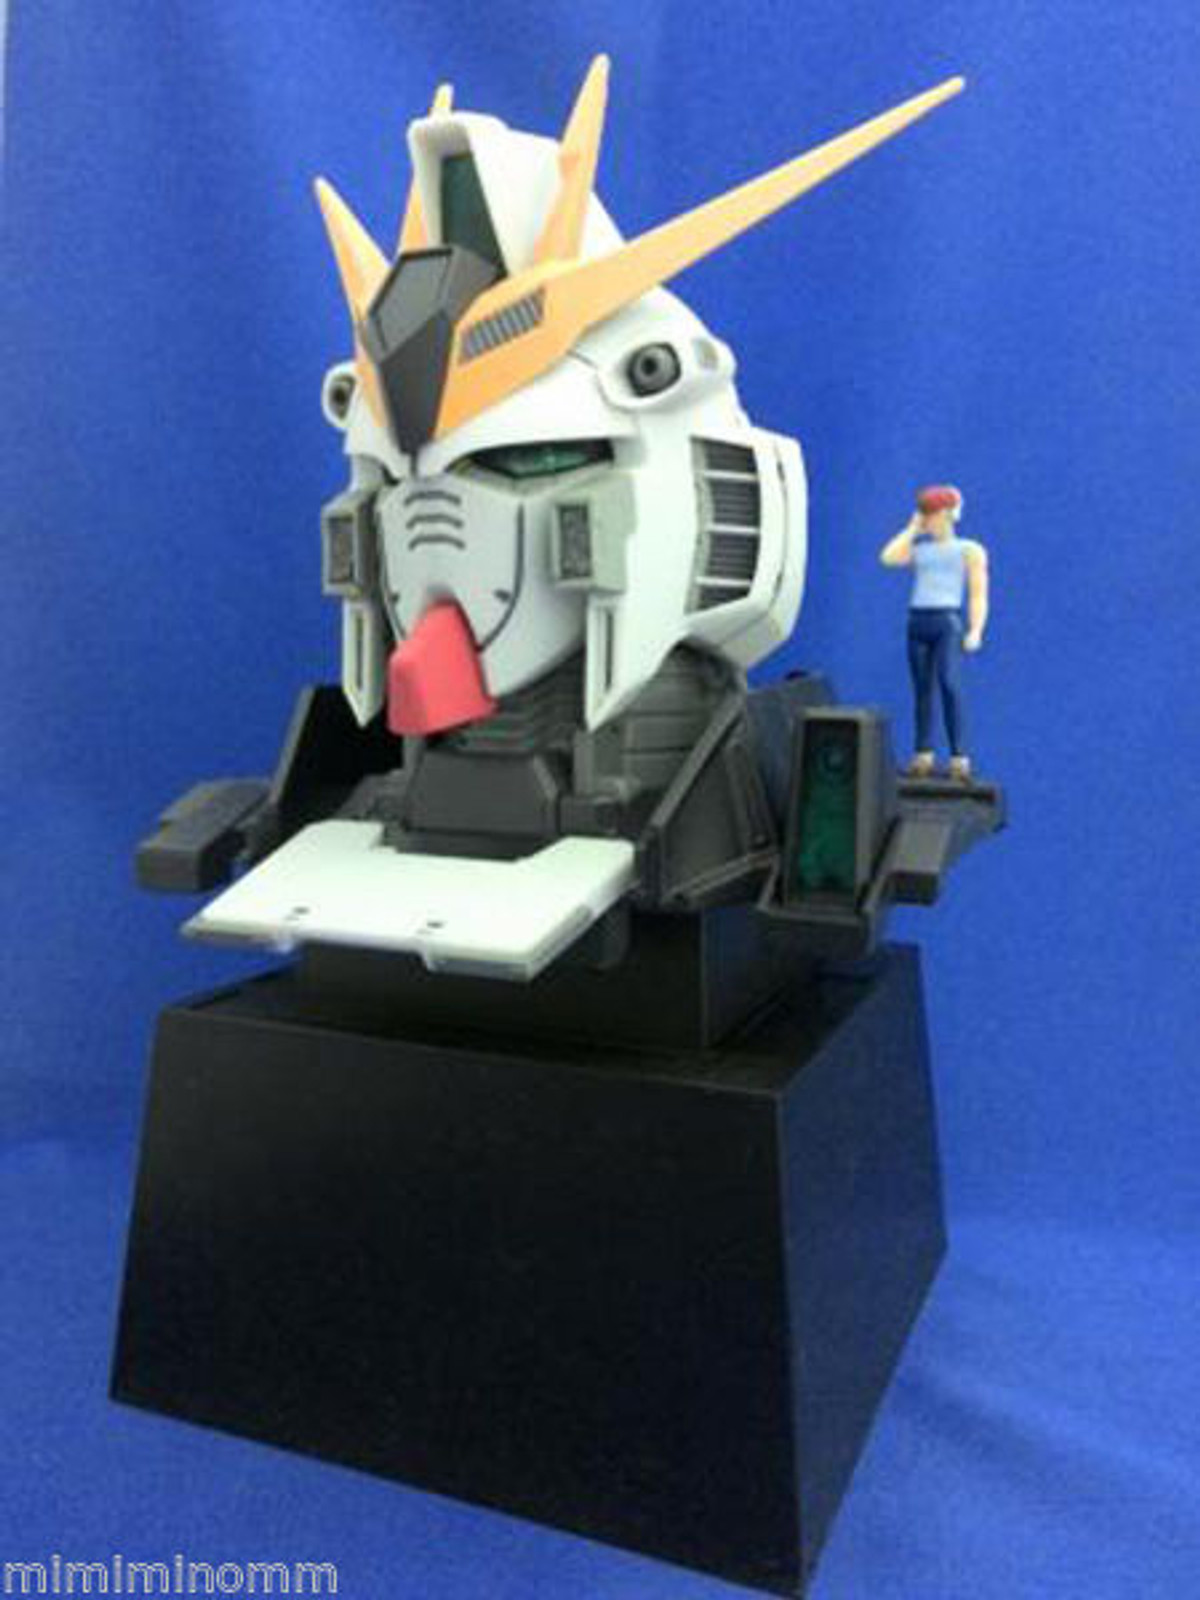 RX-93 Nu V Gundam Super Head Display Figure Banpresto JAPAN ANIME ROBOT MANGA